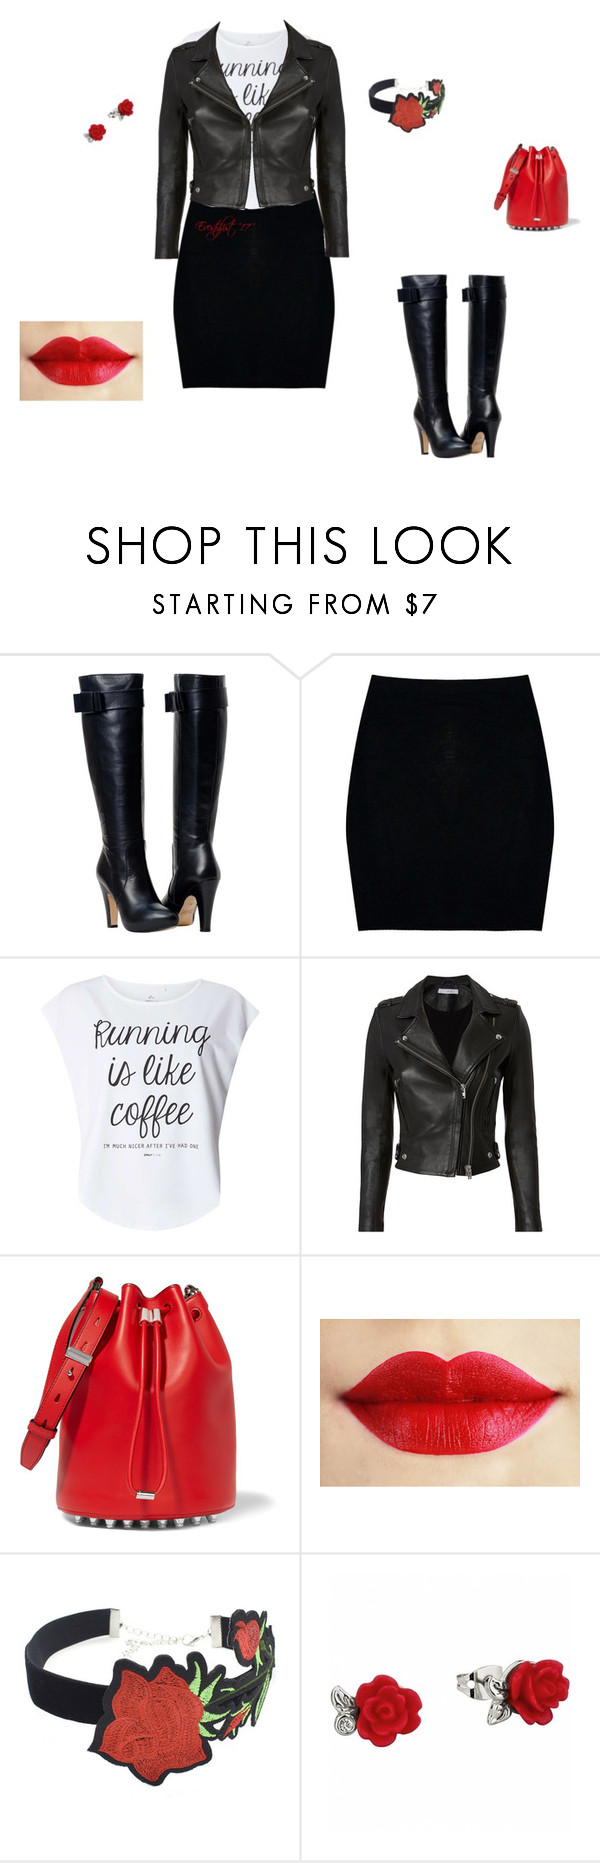 """#2"" by bellascurvas on Polyvore featuring Boohoo, Dorothy Perkins, IRO, Alexander Wang and WithChic"